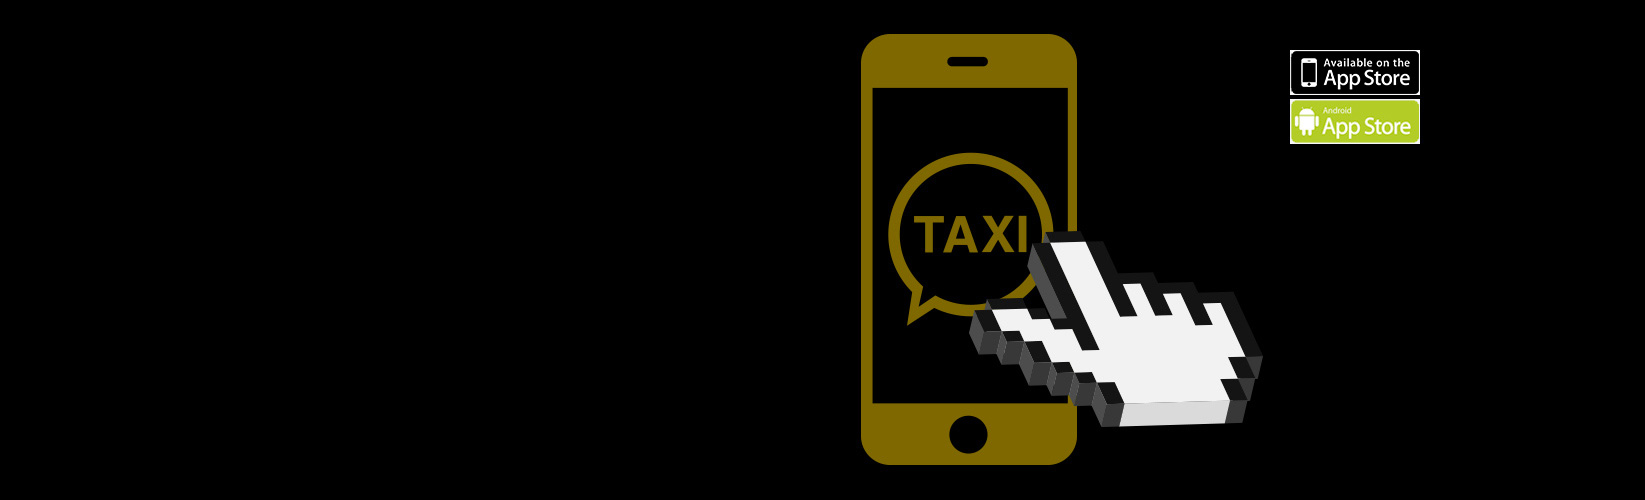 BOOK A TAXI WITH YOUR SMARTPHONE DOWNLOAD OUR APP NOW